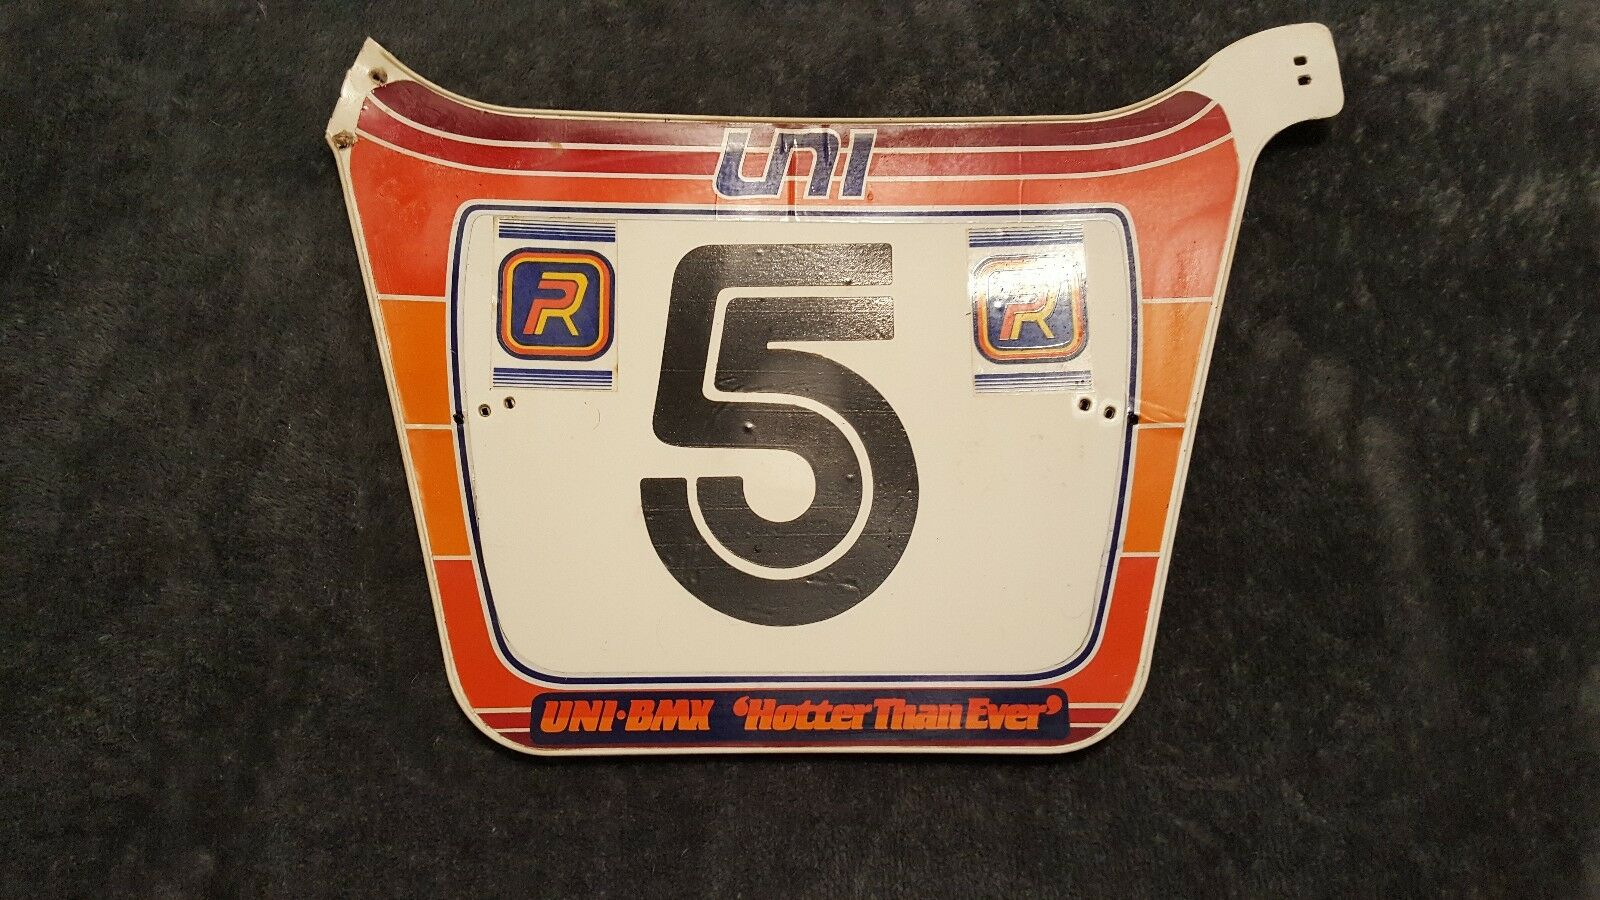 OLD SCHOOL BMX 1982 UNI HOTTER THAN EVER  PATTERSON NUMBER PLATE VINTAGE RARE HTF  fashion mall